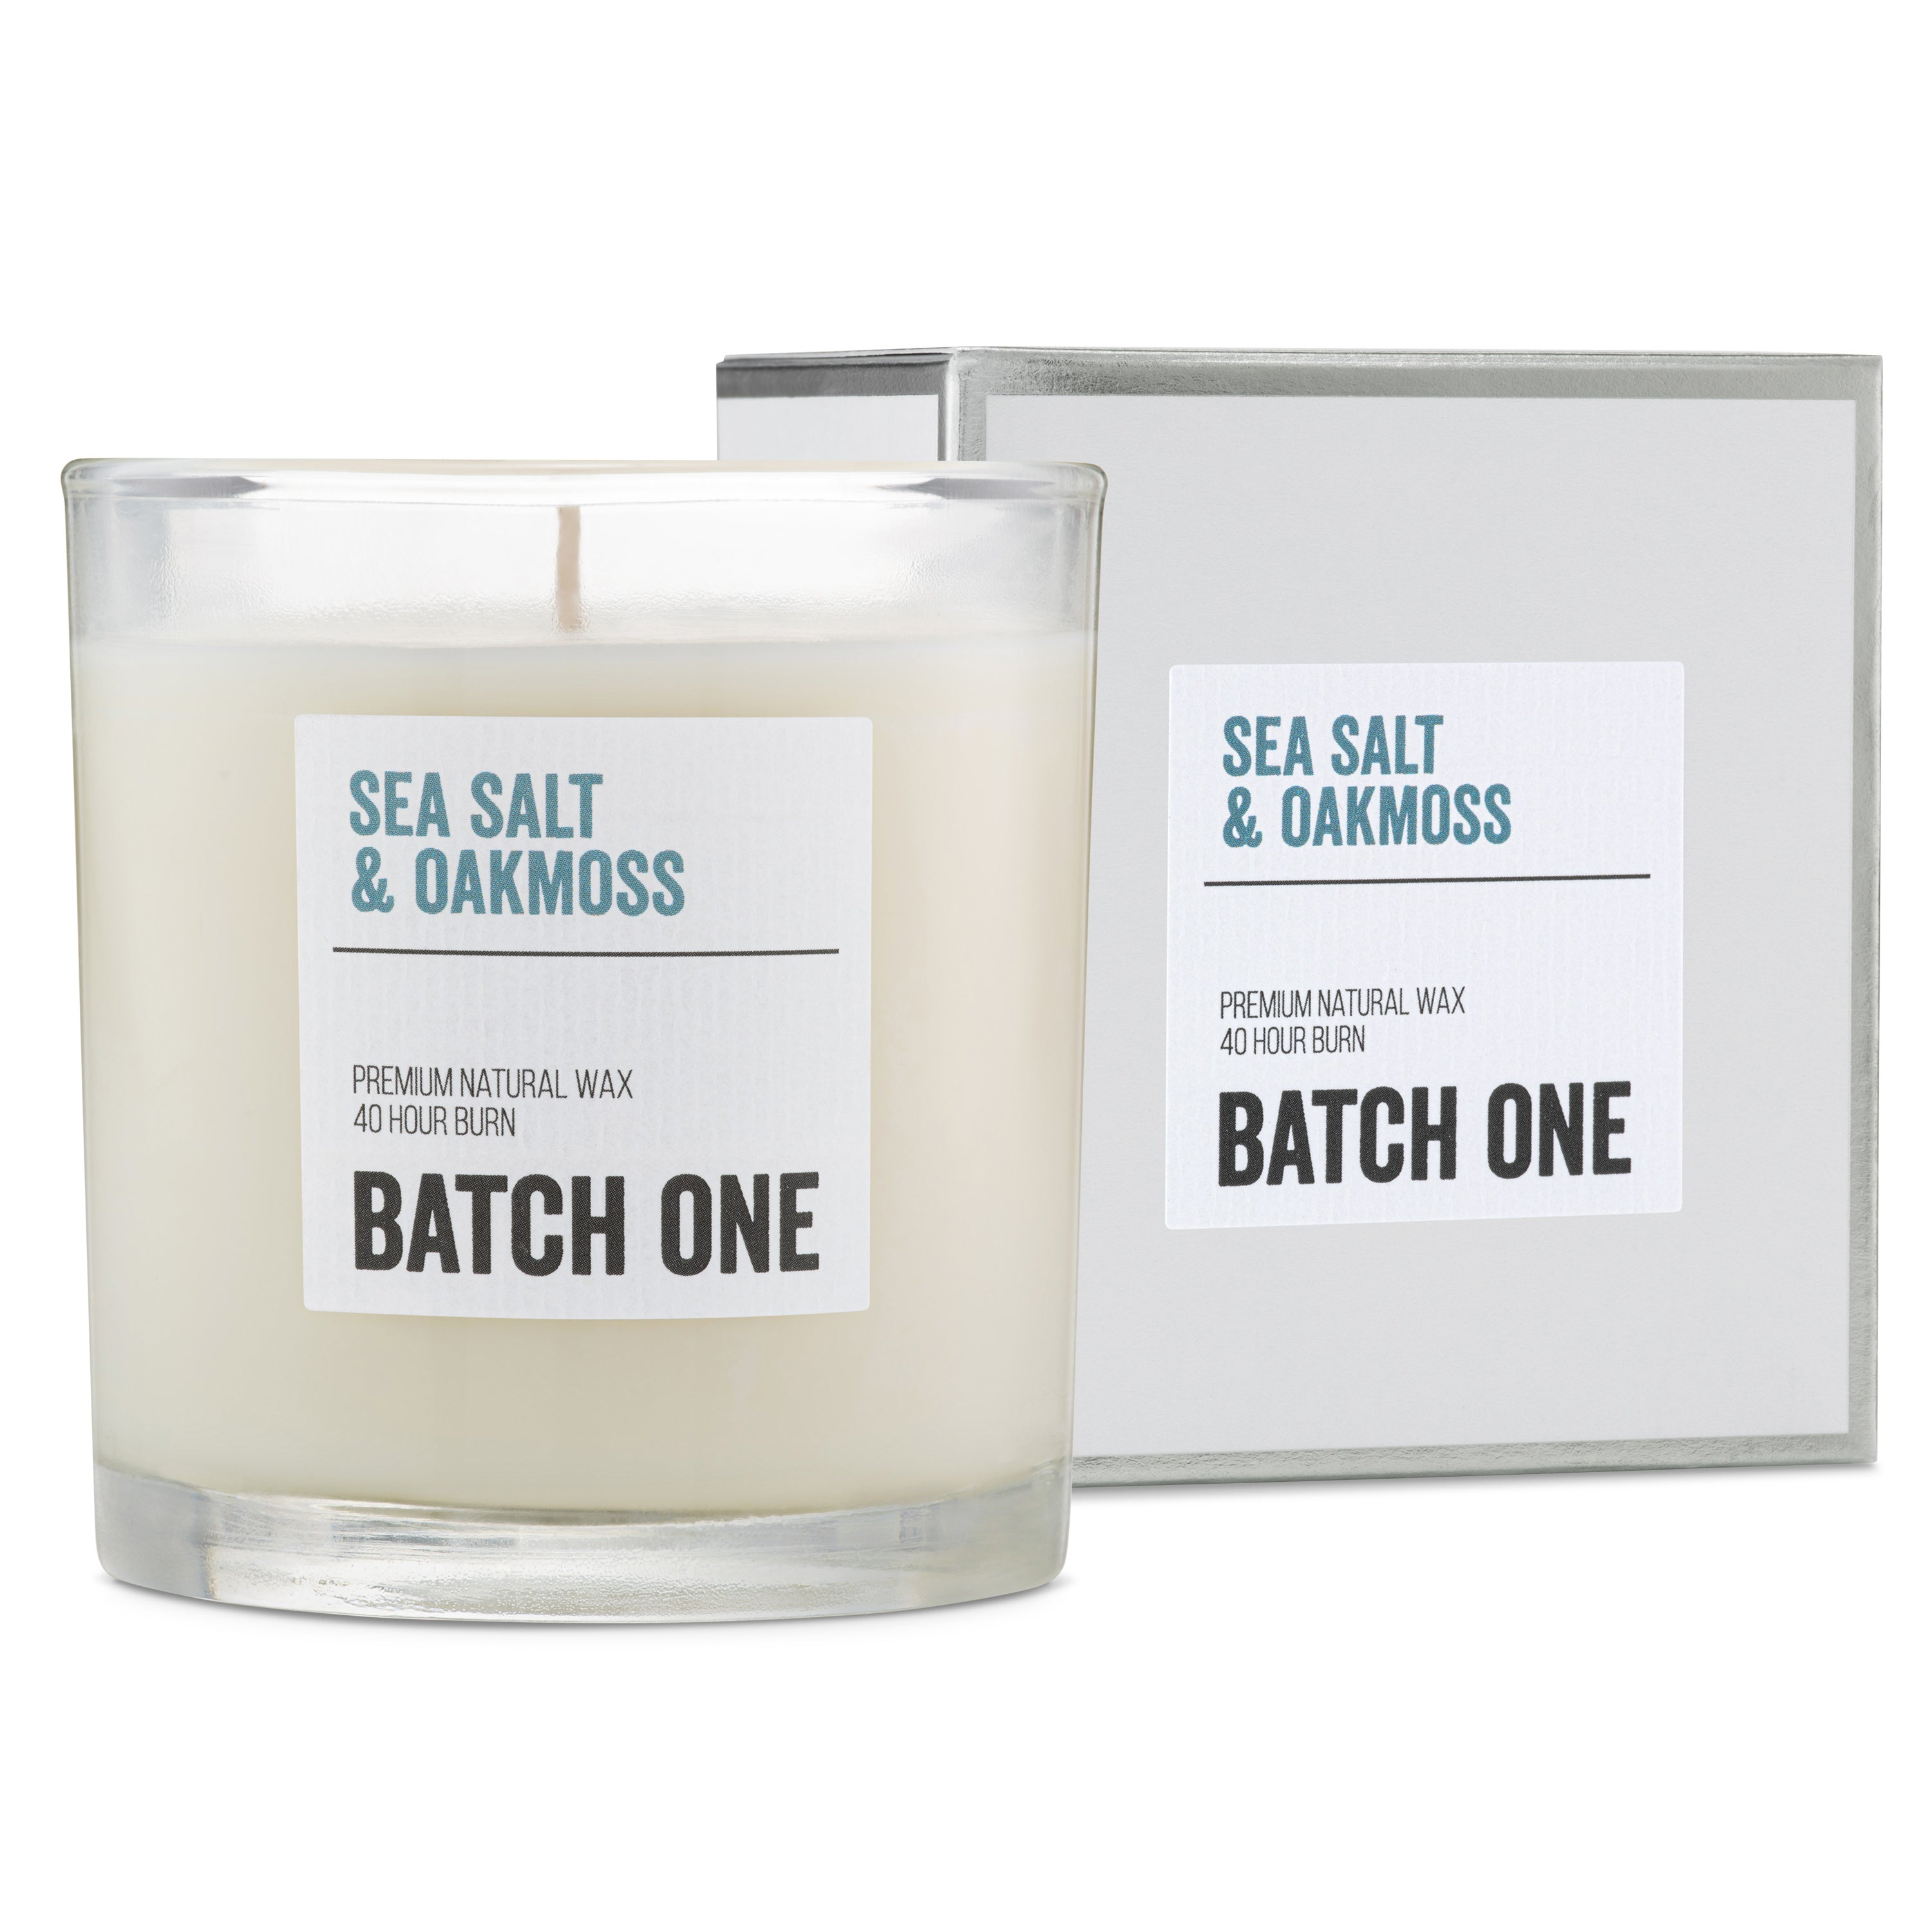 This candle is perfect for: